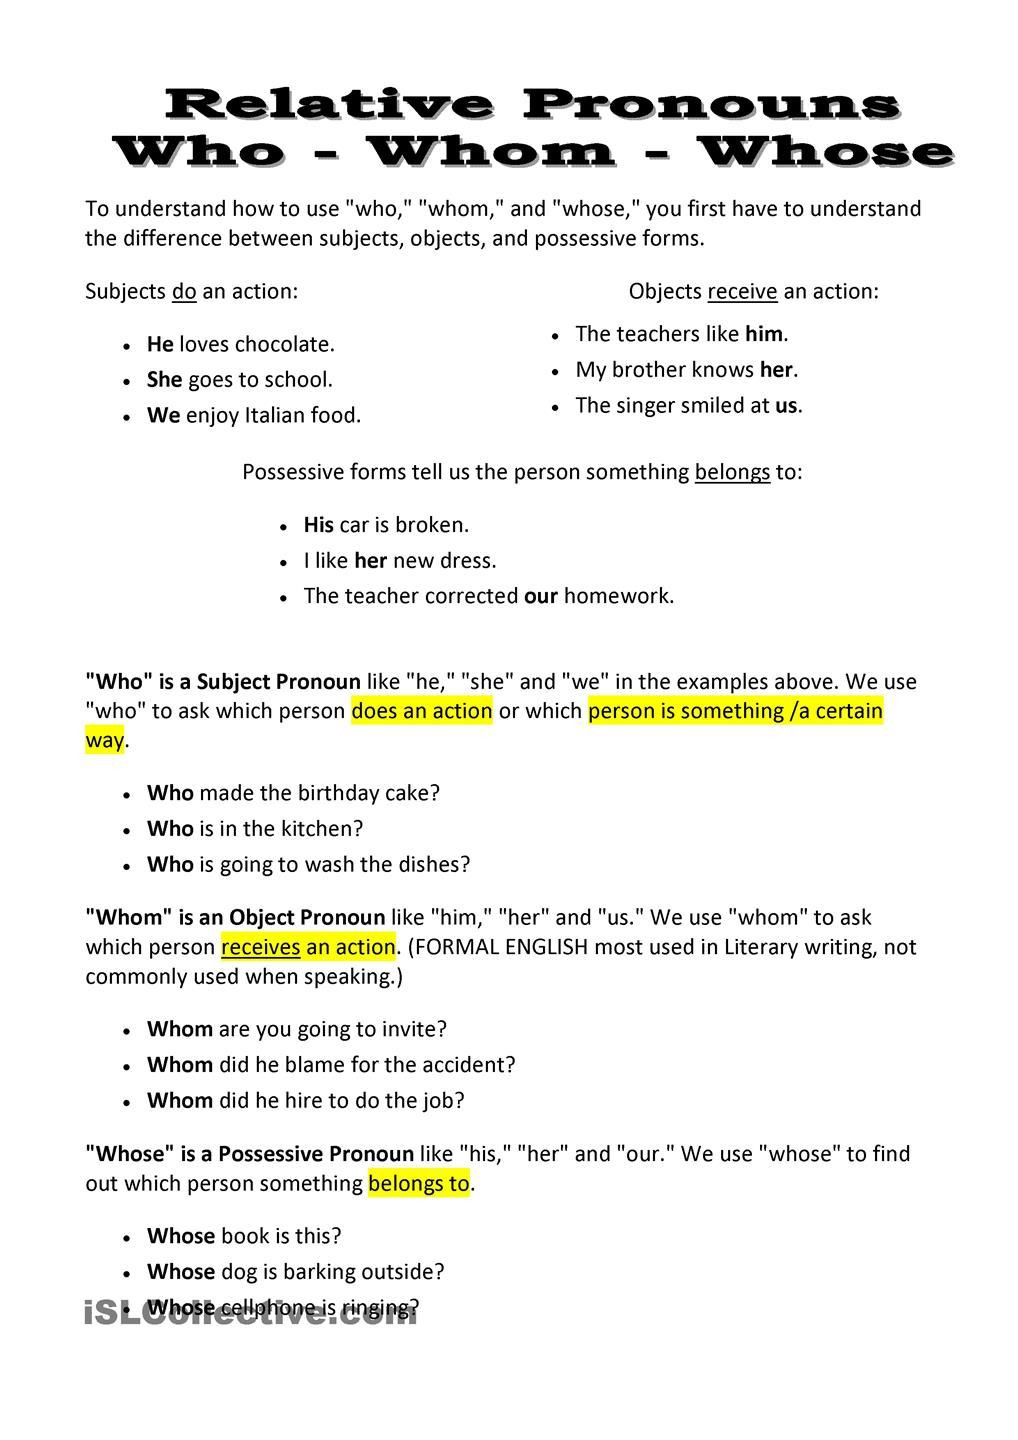 Relative Pronouns Worksheets 4th Grade Relative Pronouns who whom whose